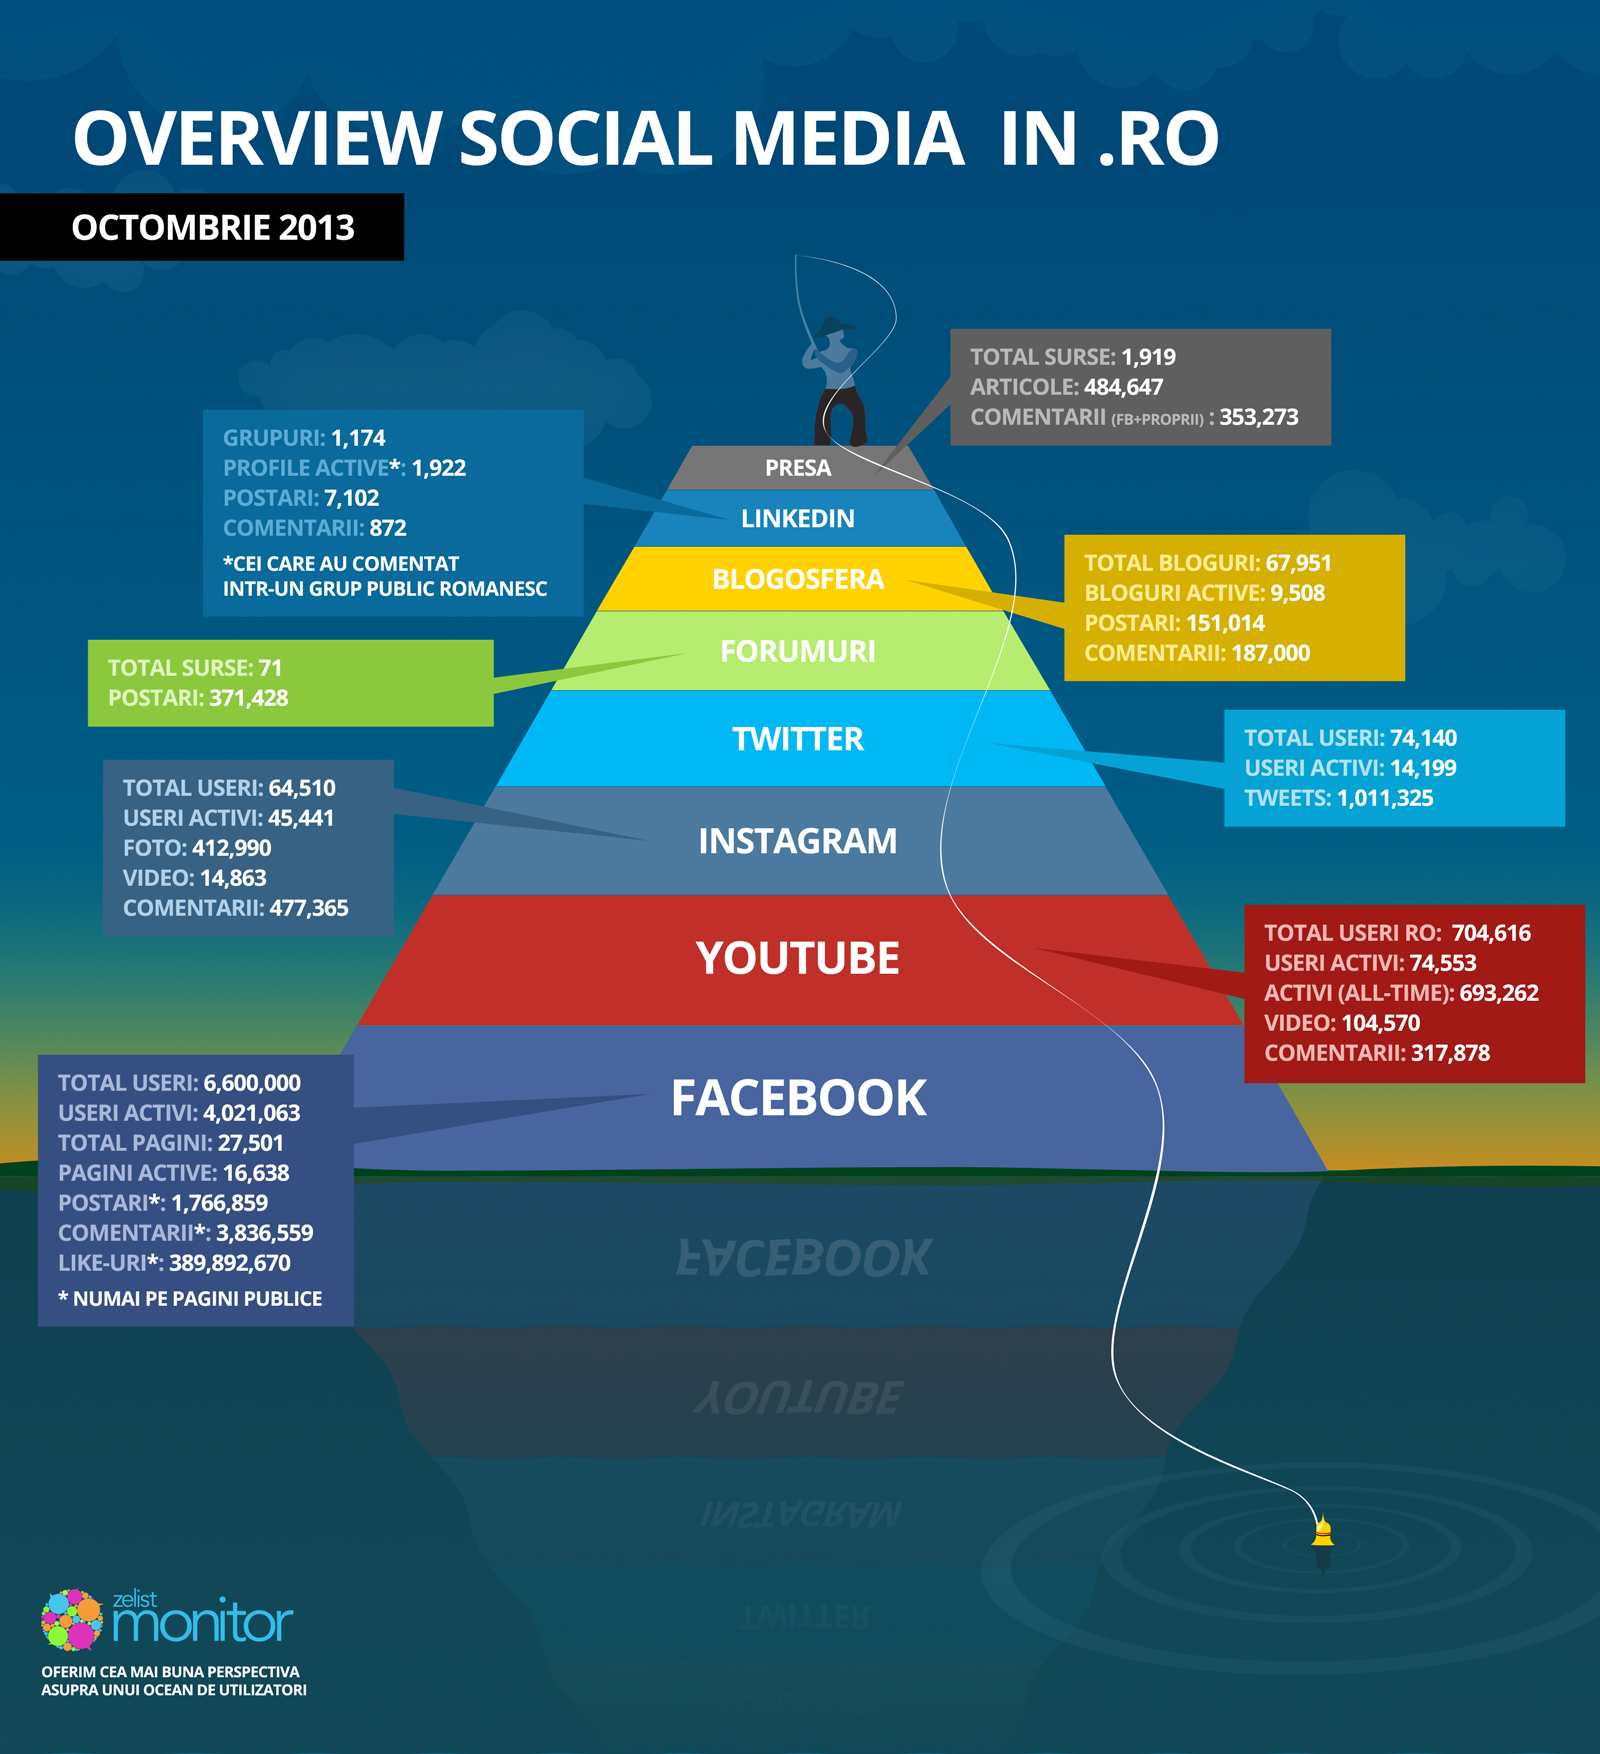 Overview Social Media